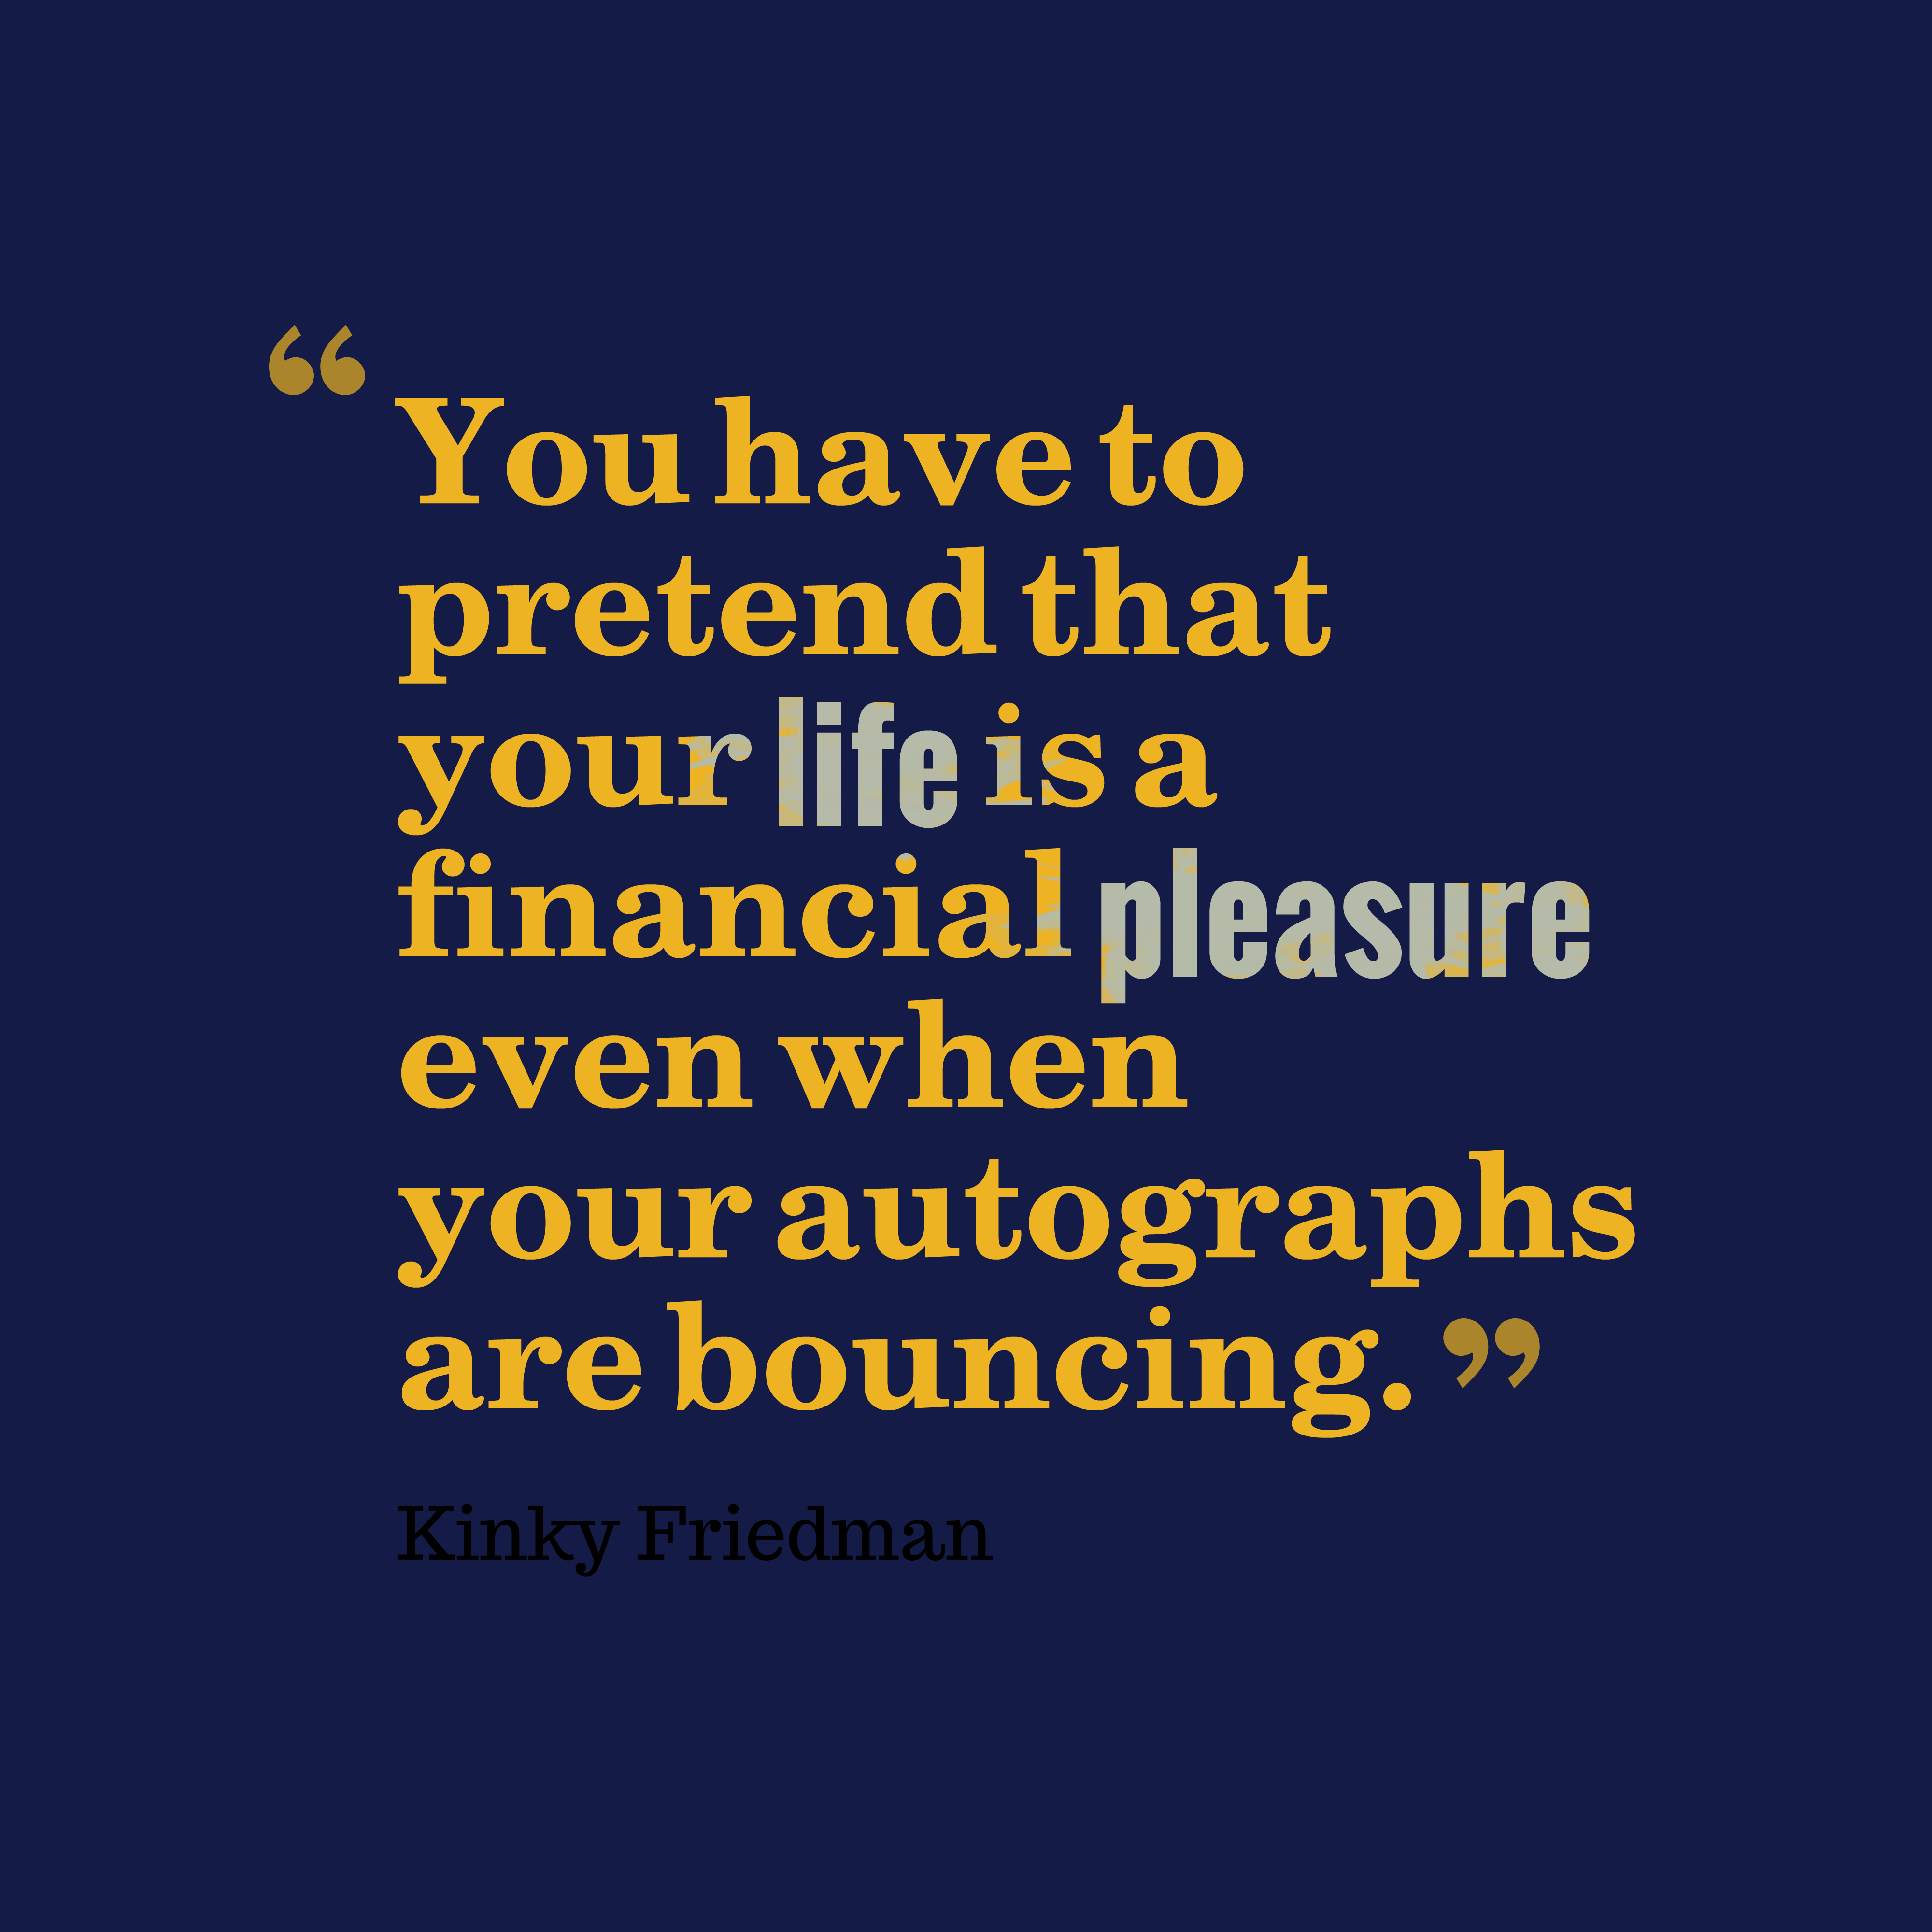 Quotes image of You have to pretend that your life is a financial pleasure even when your autographs are bouncing.